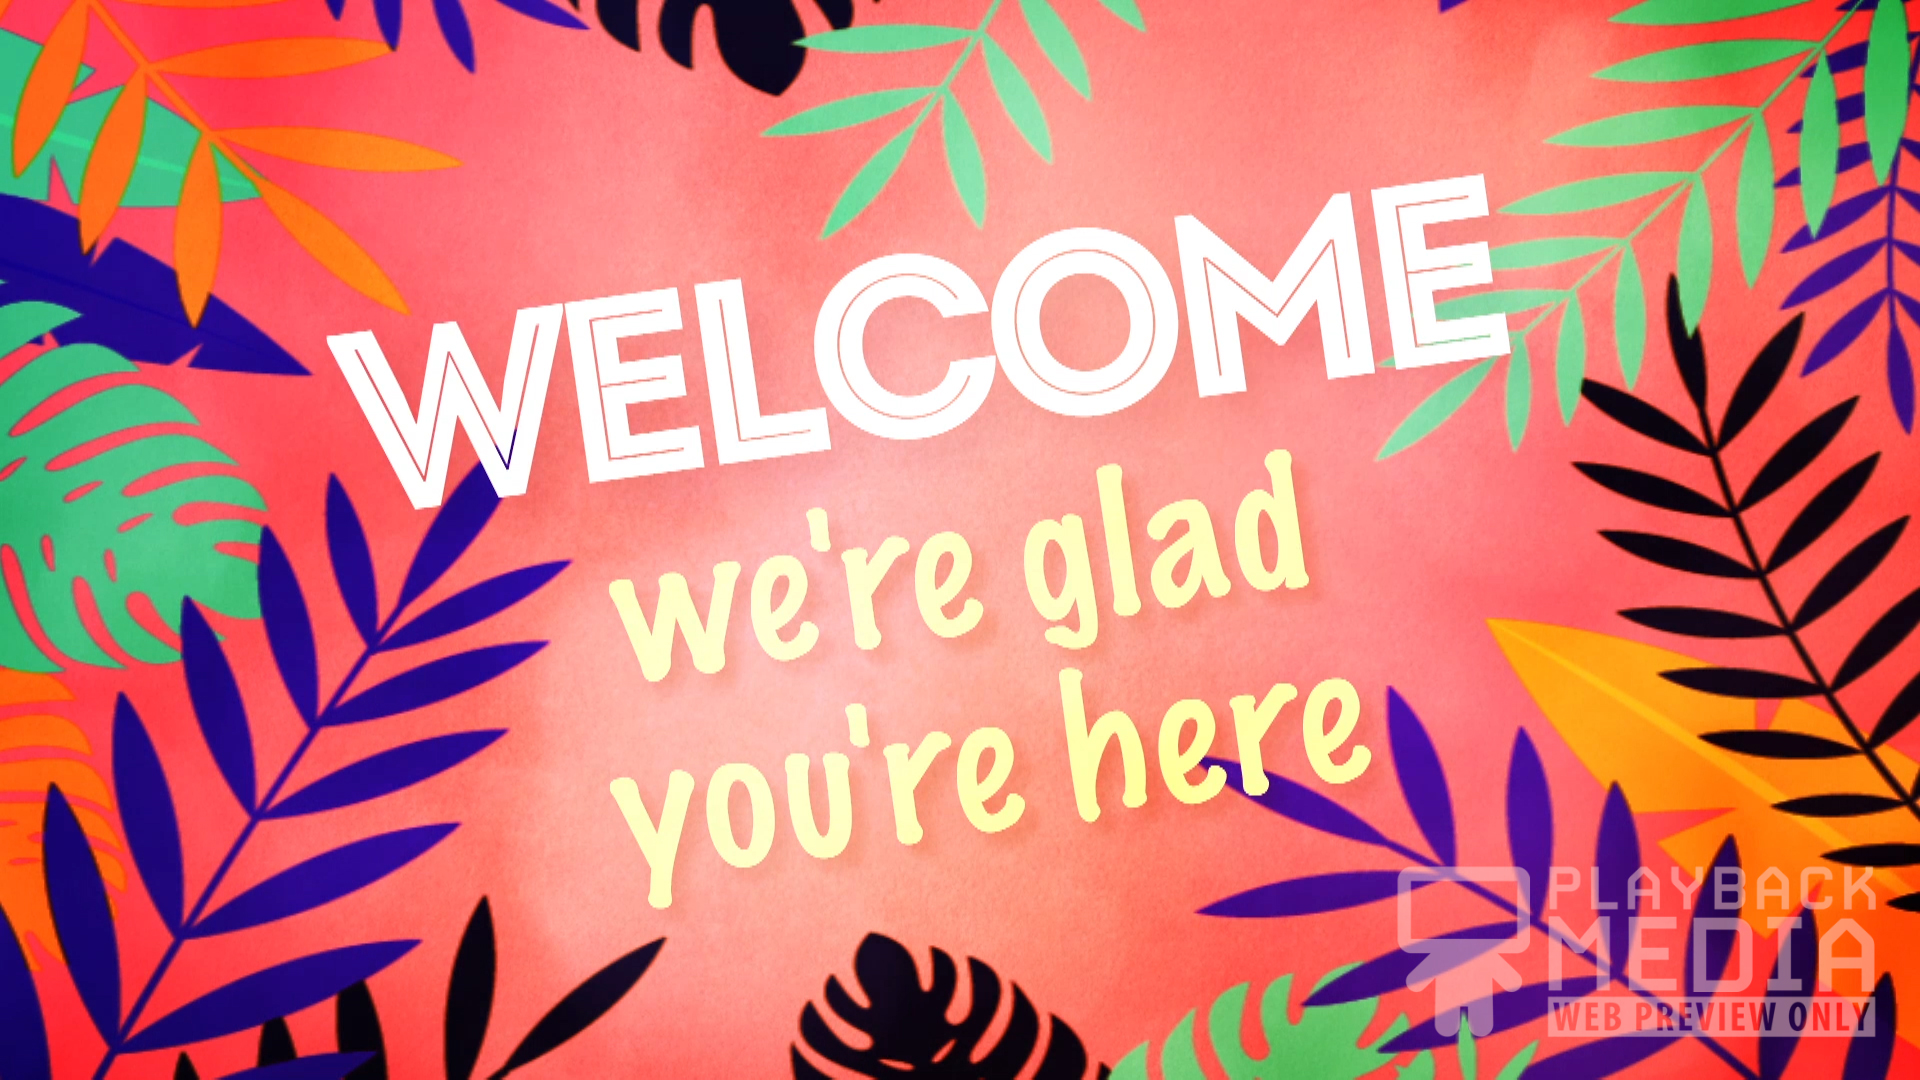 palm sunday party welcome motion background